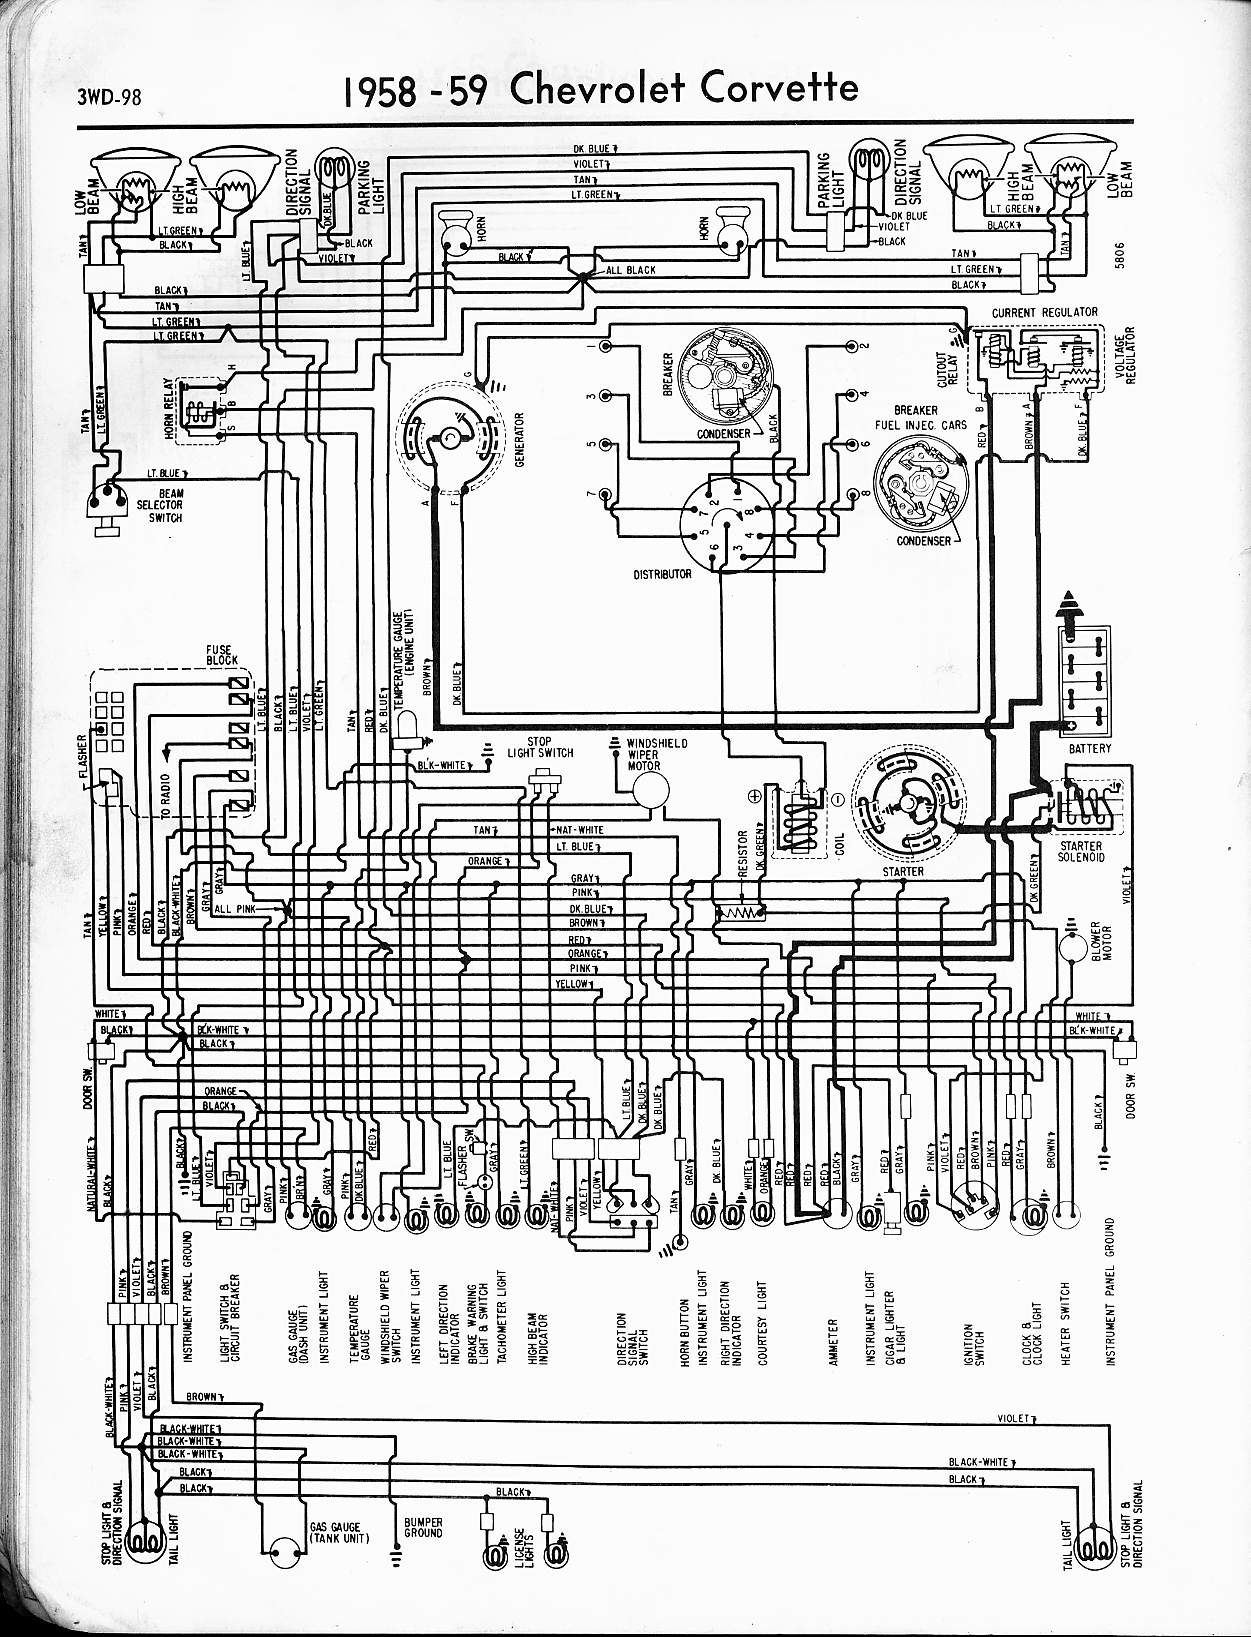 69 Chevrolet Impala Wiring Diagram Library 1964 Chevy Truck Pdf 1969 Diagrams67 Sedan Schematic Data 1966